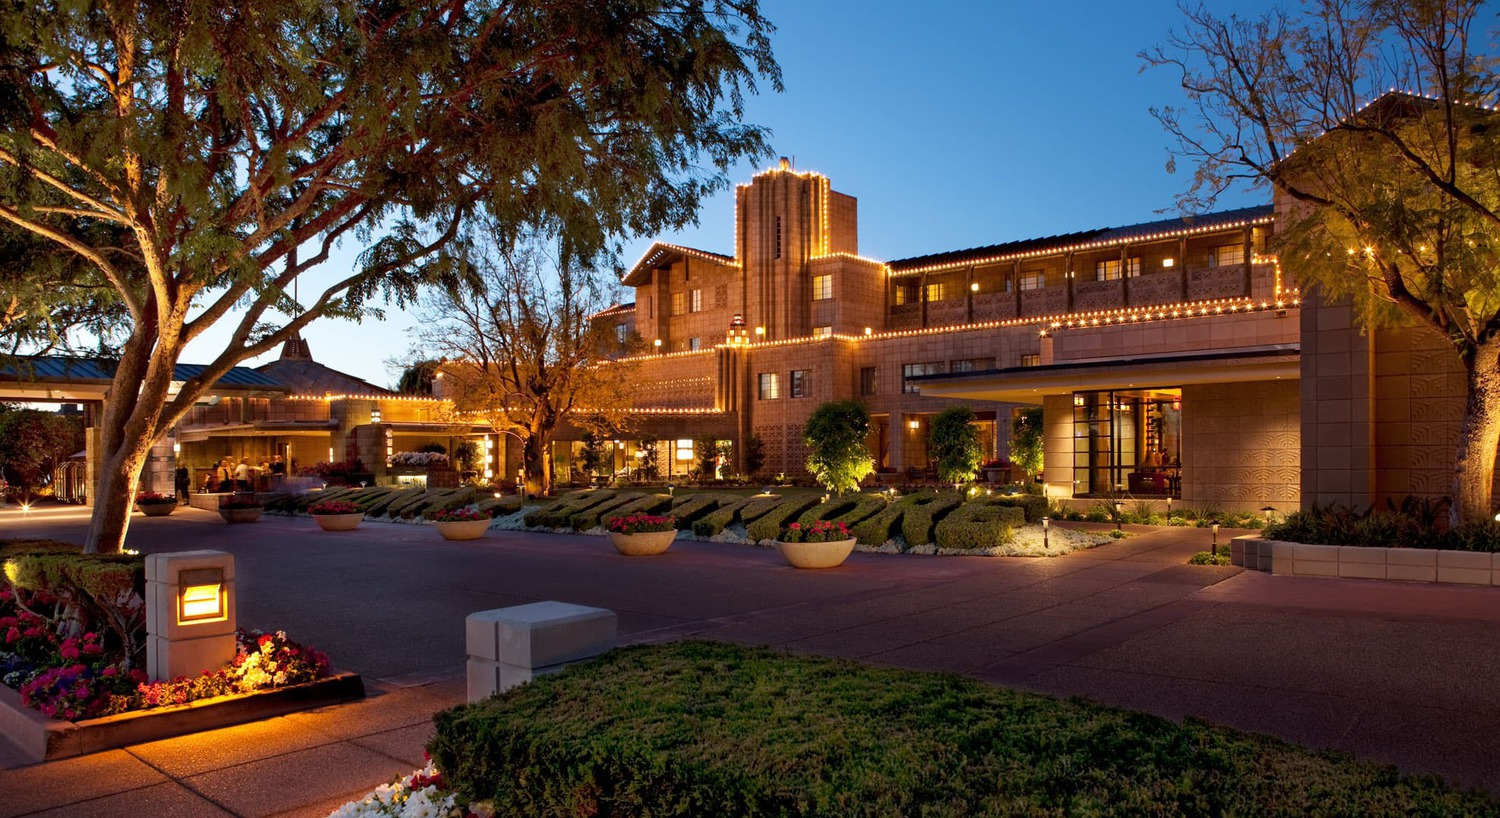 event services manager arizona biltmore job arizona biltmore